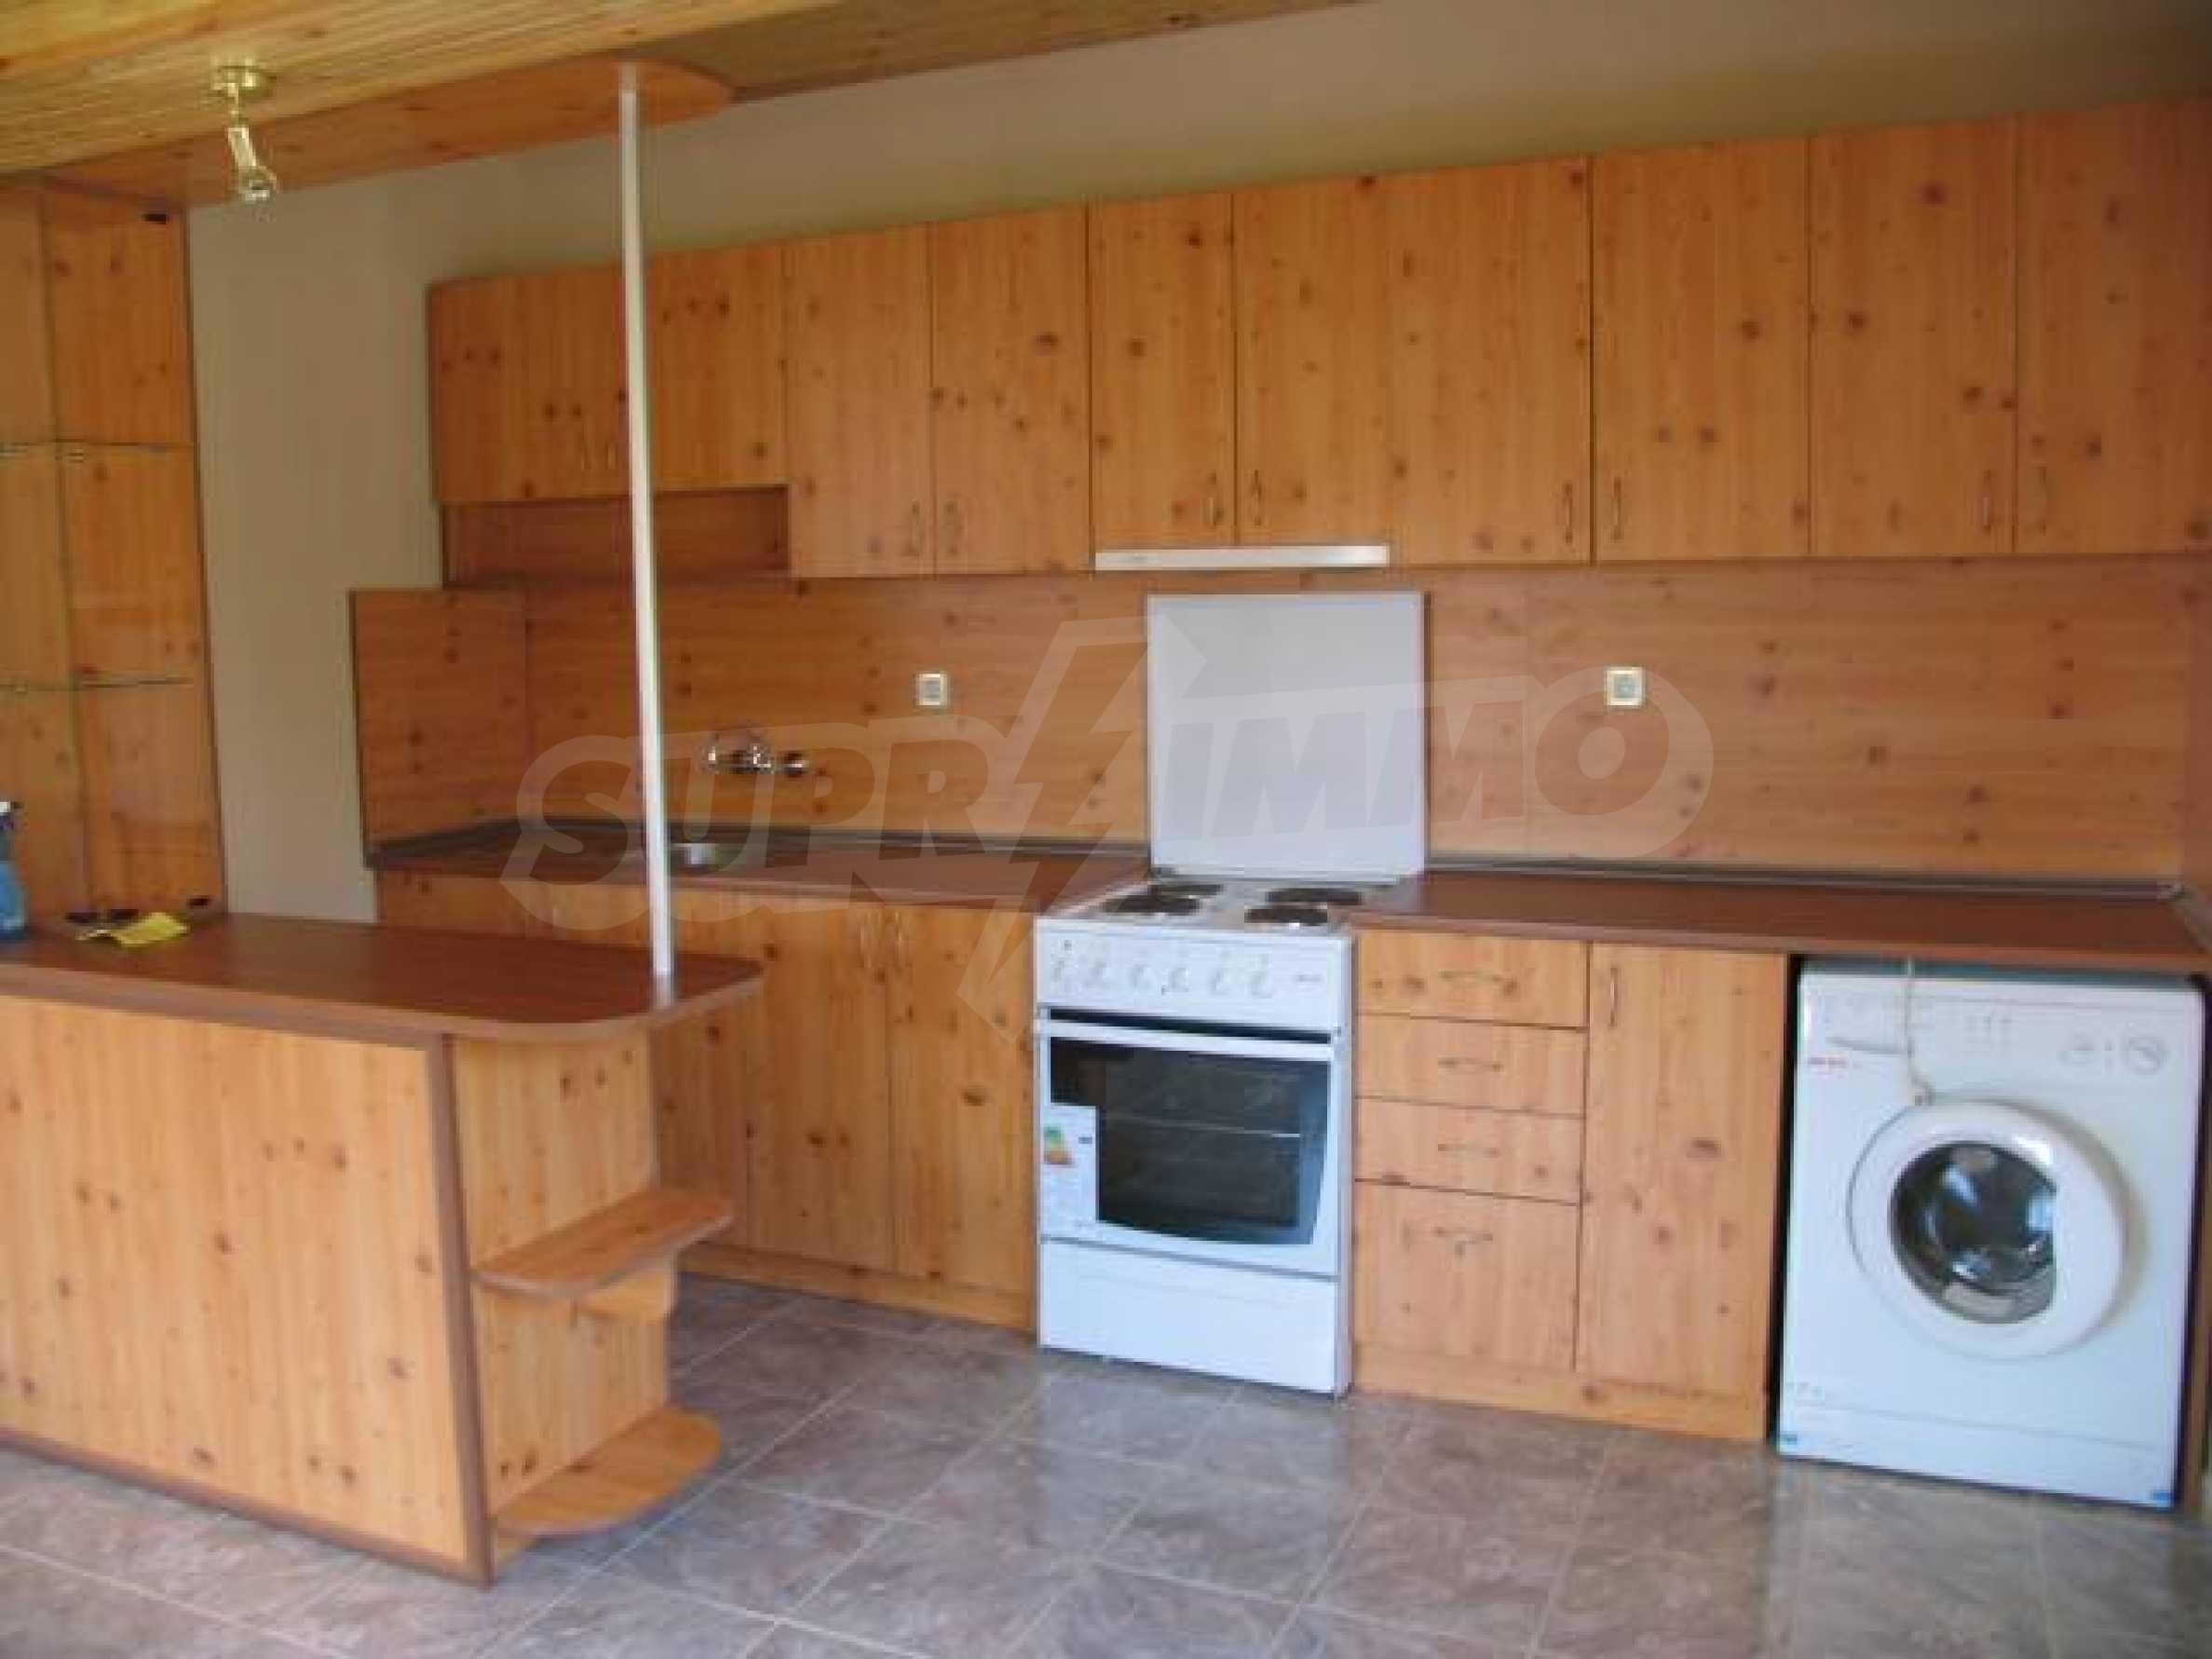 Two houses for sale in Stefanovo village 25km. from Albena 11